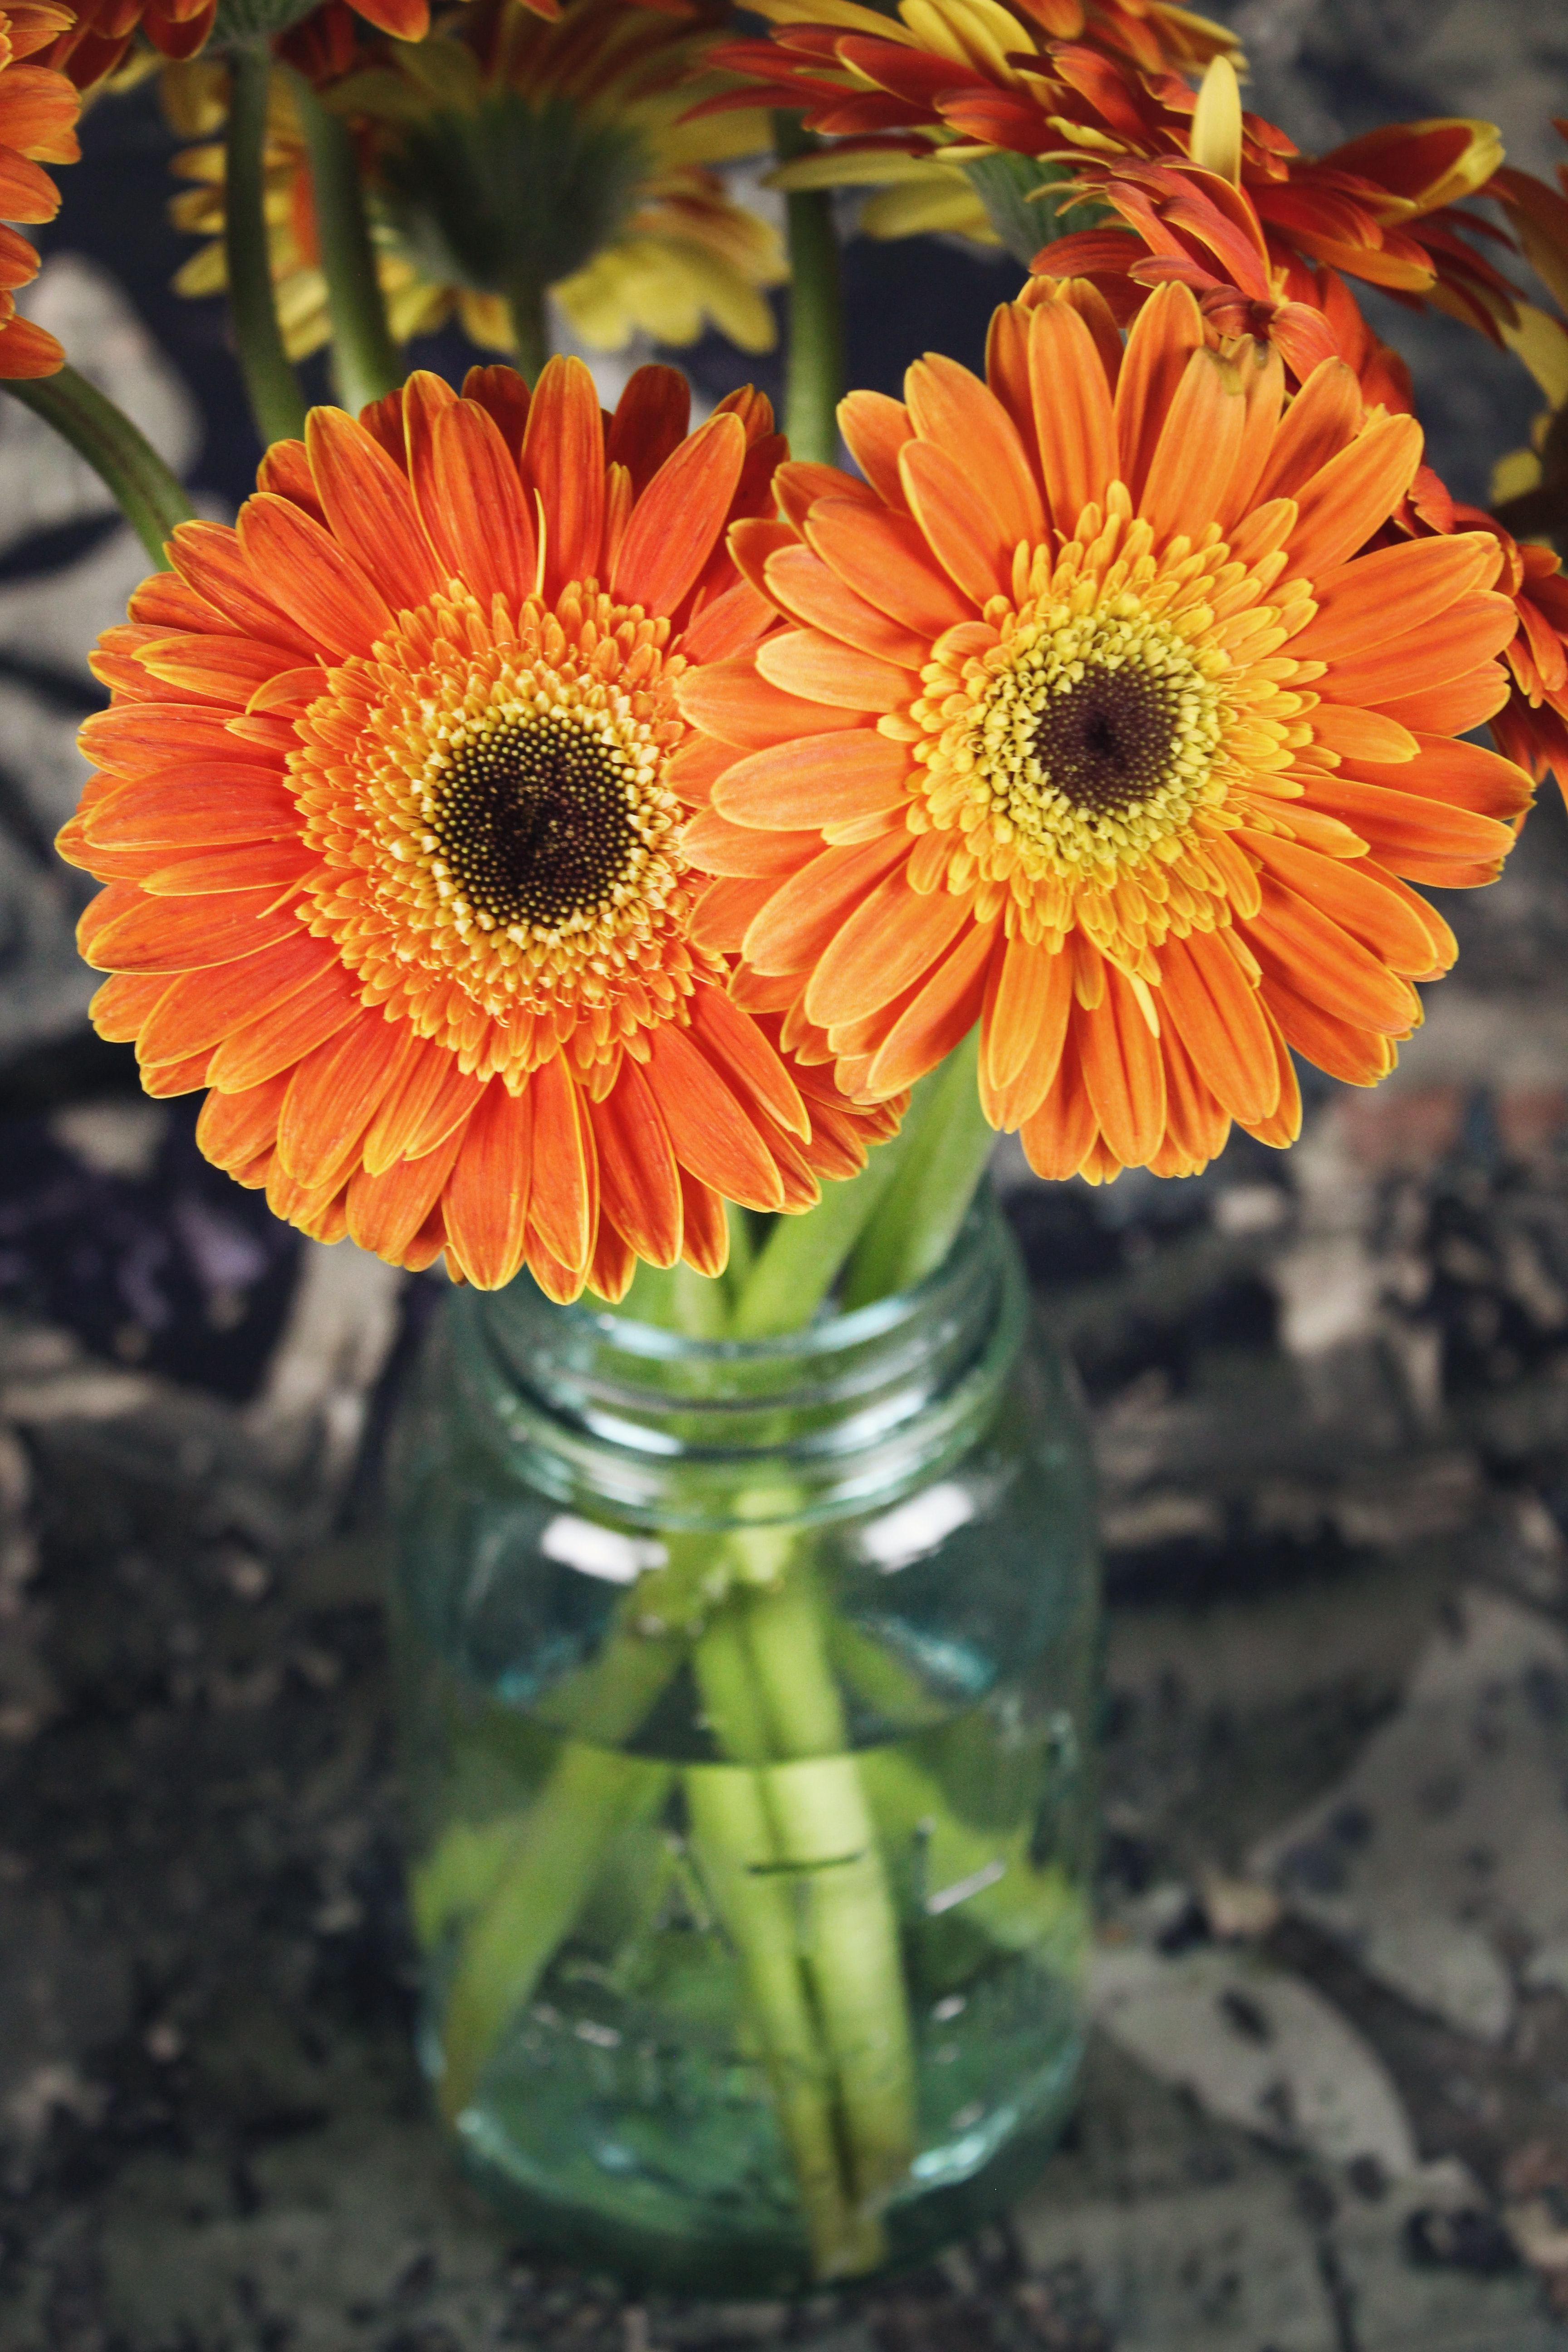 Gerbera Flower Bouquets In 2020 Plants With Pink Flowers Gerbera Flower Gerbera Daisy Bouquet